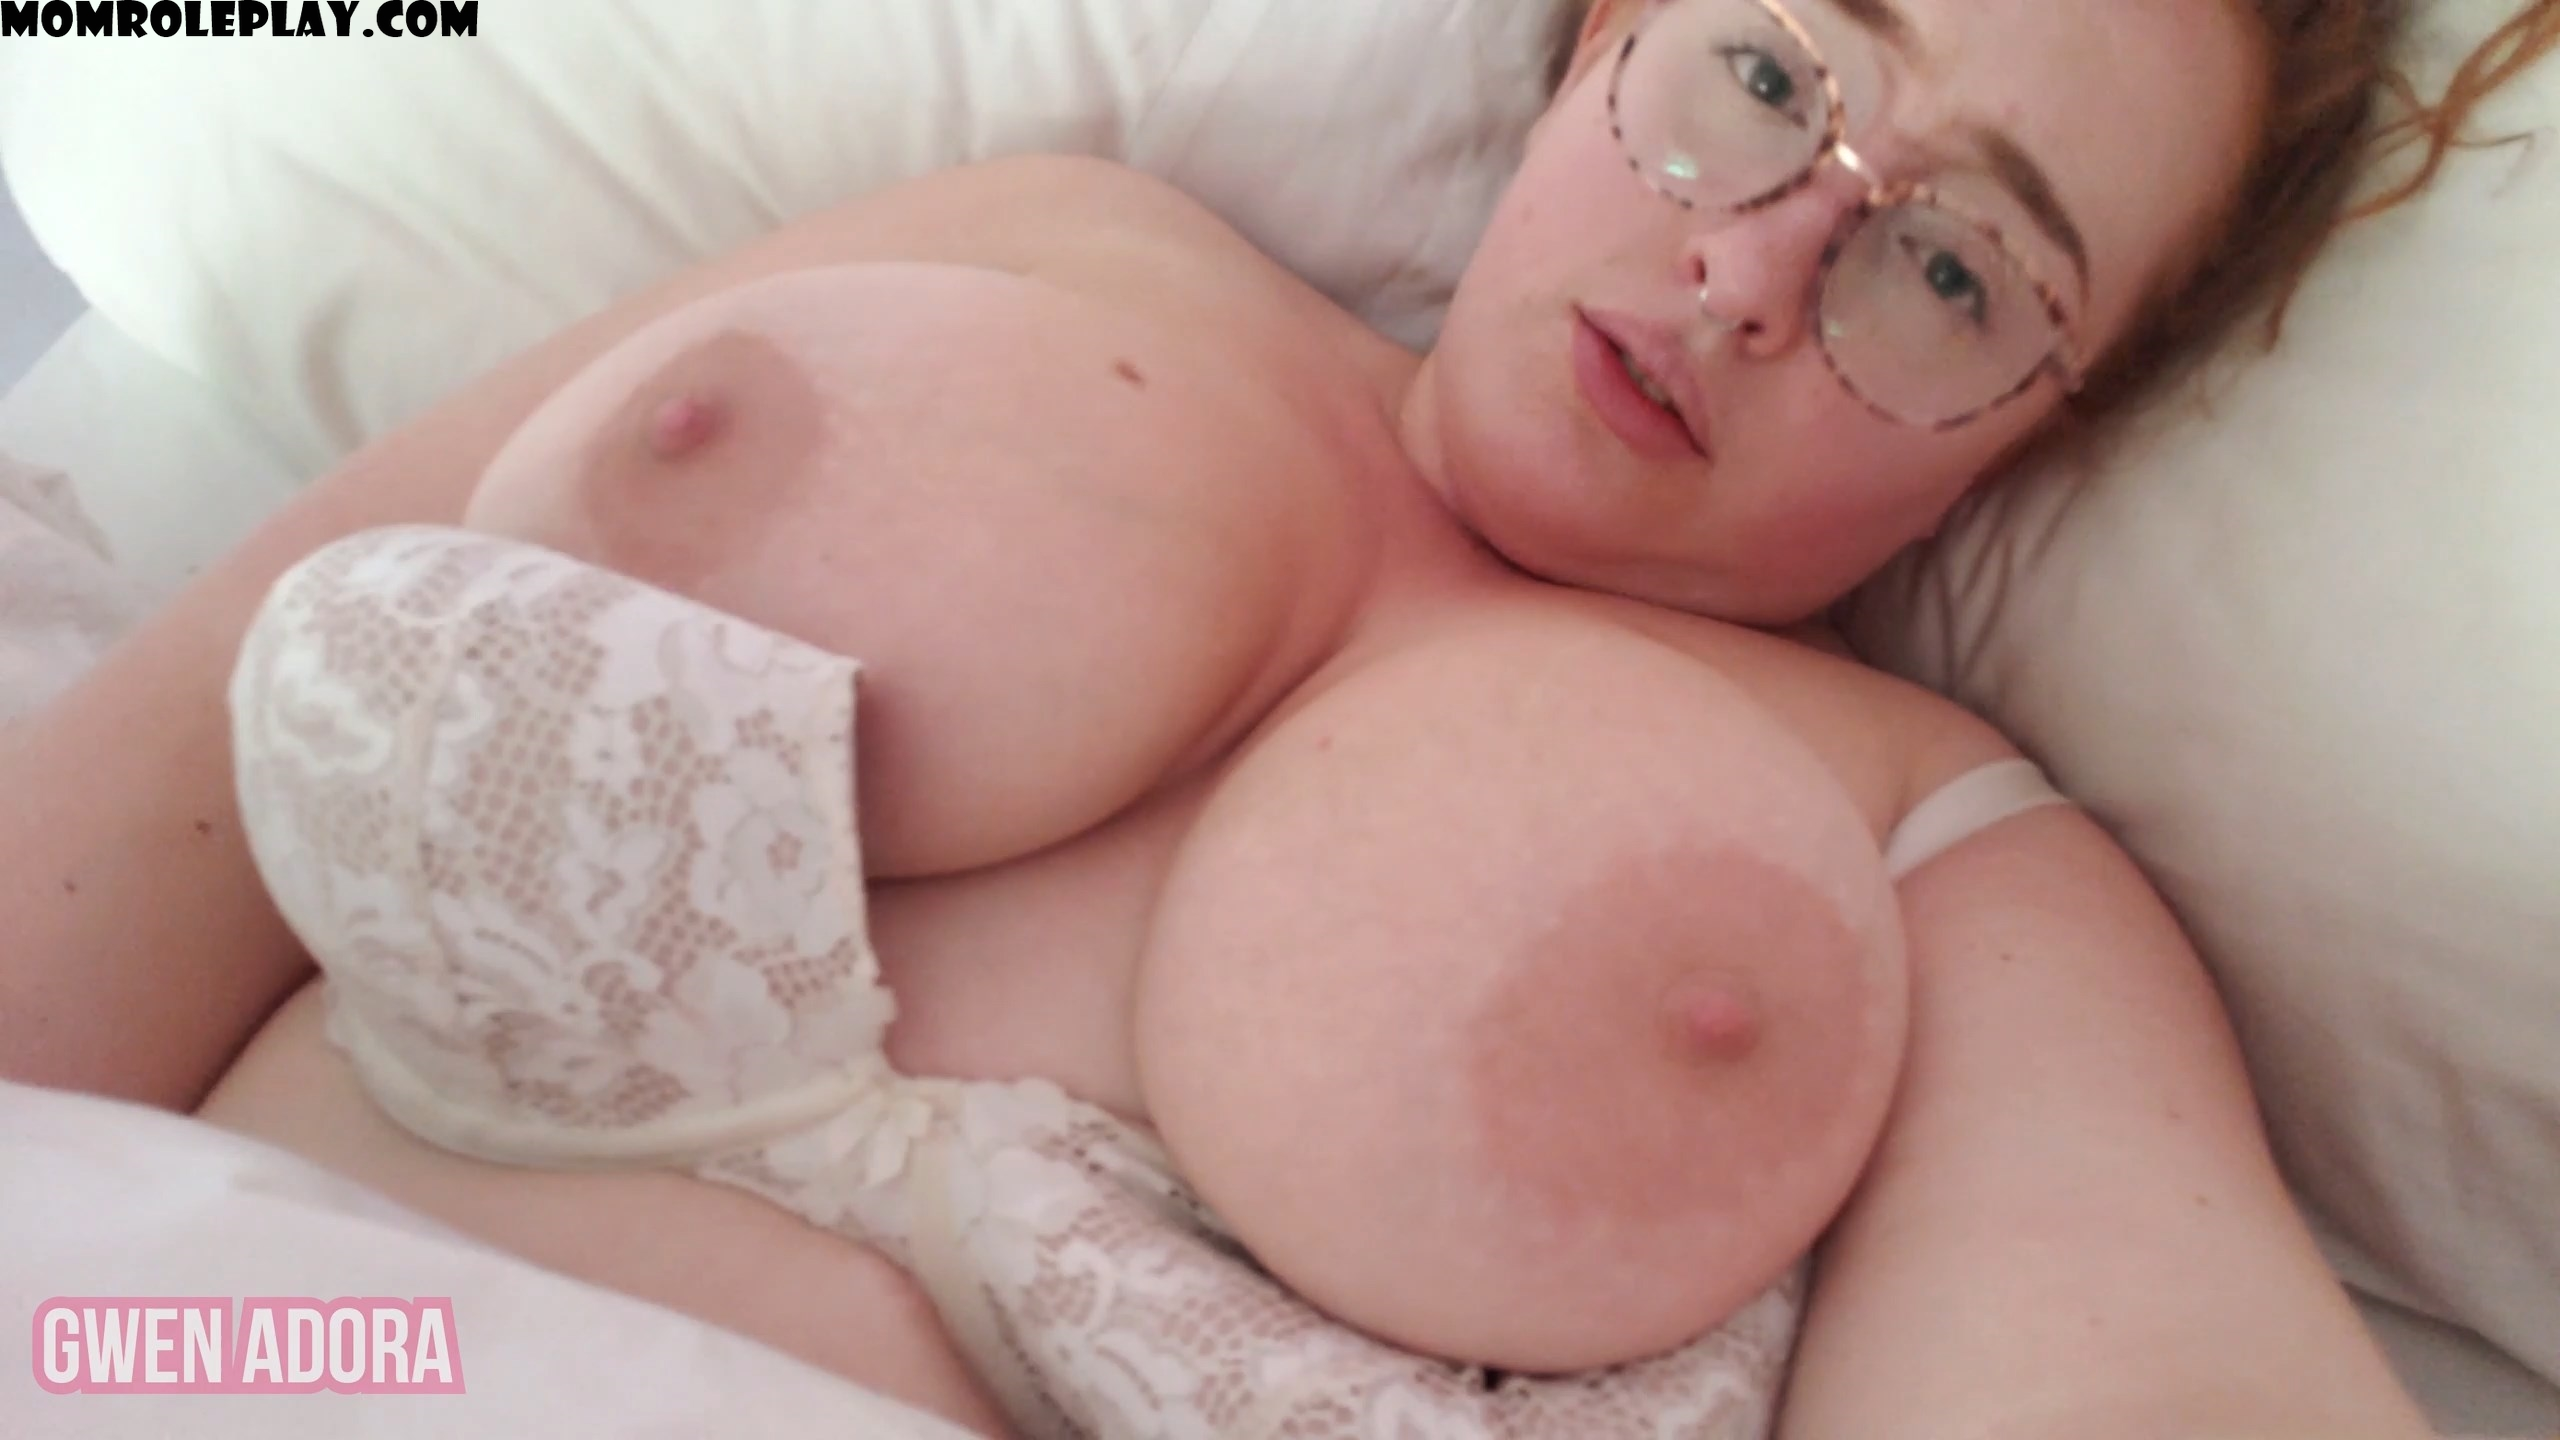 Gwen Adora - Suckle Mommy's Big Boobs Before Bed JOI